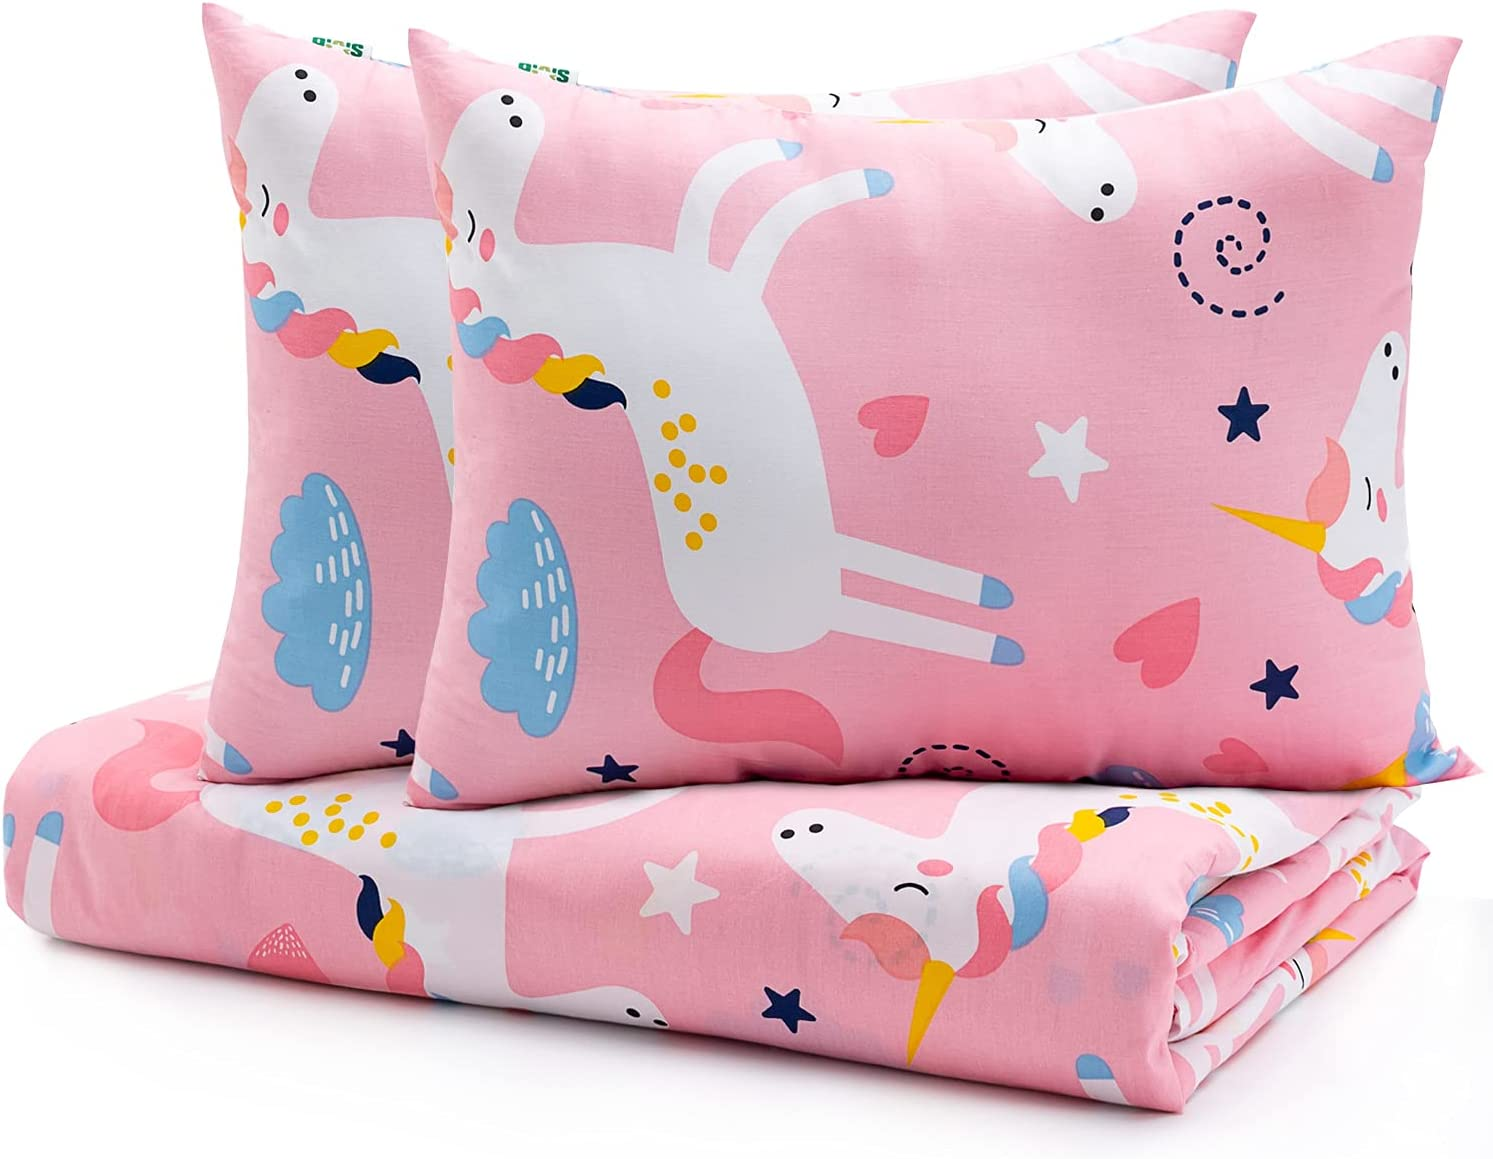 Sivio Unicorn Duvet Fees free Cover Full for 86x86 I Weighted Blanket Kids safety